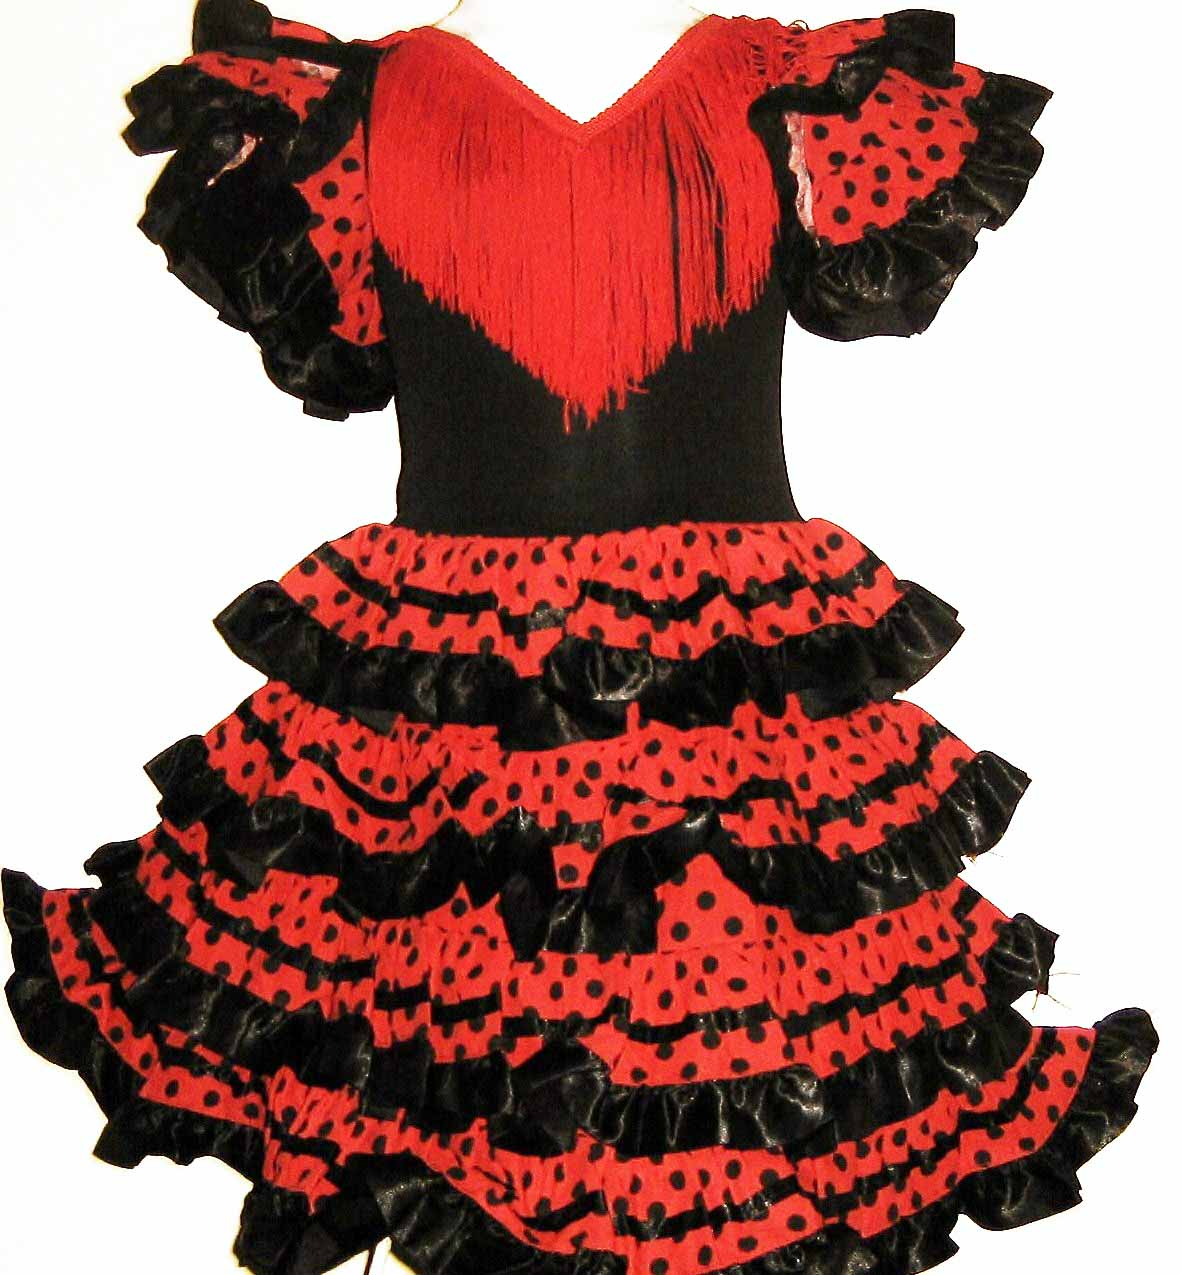 Robe filletette pour danser le flamenco